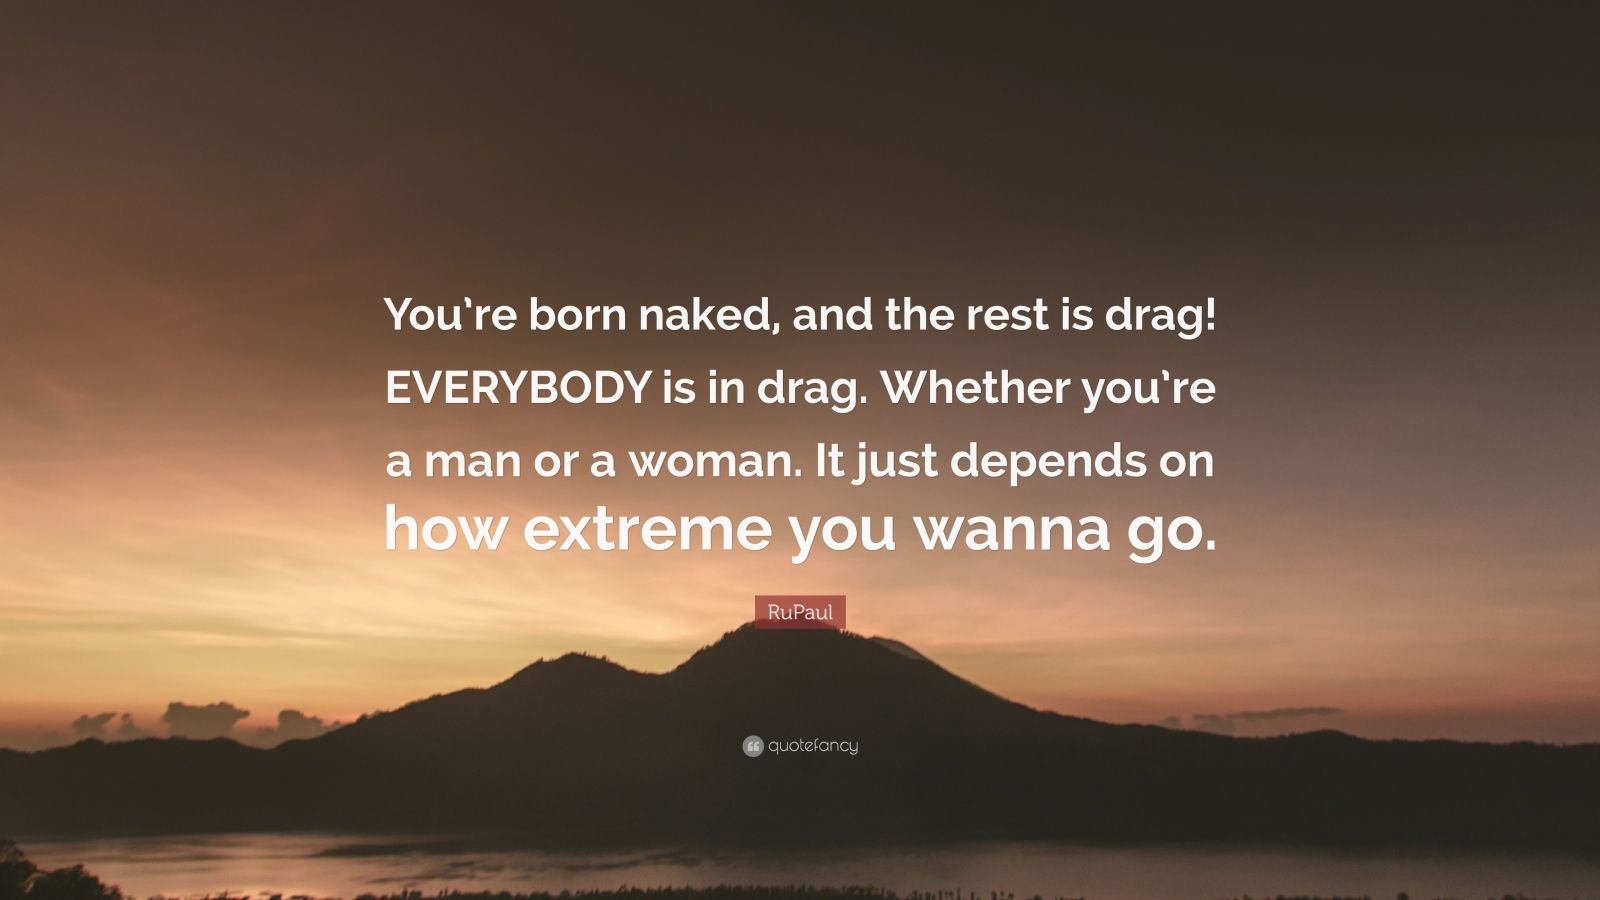 RuPaul Quote: Youre born naked, and the rest is drag